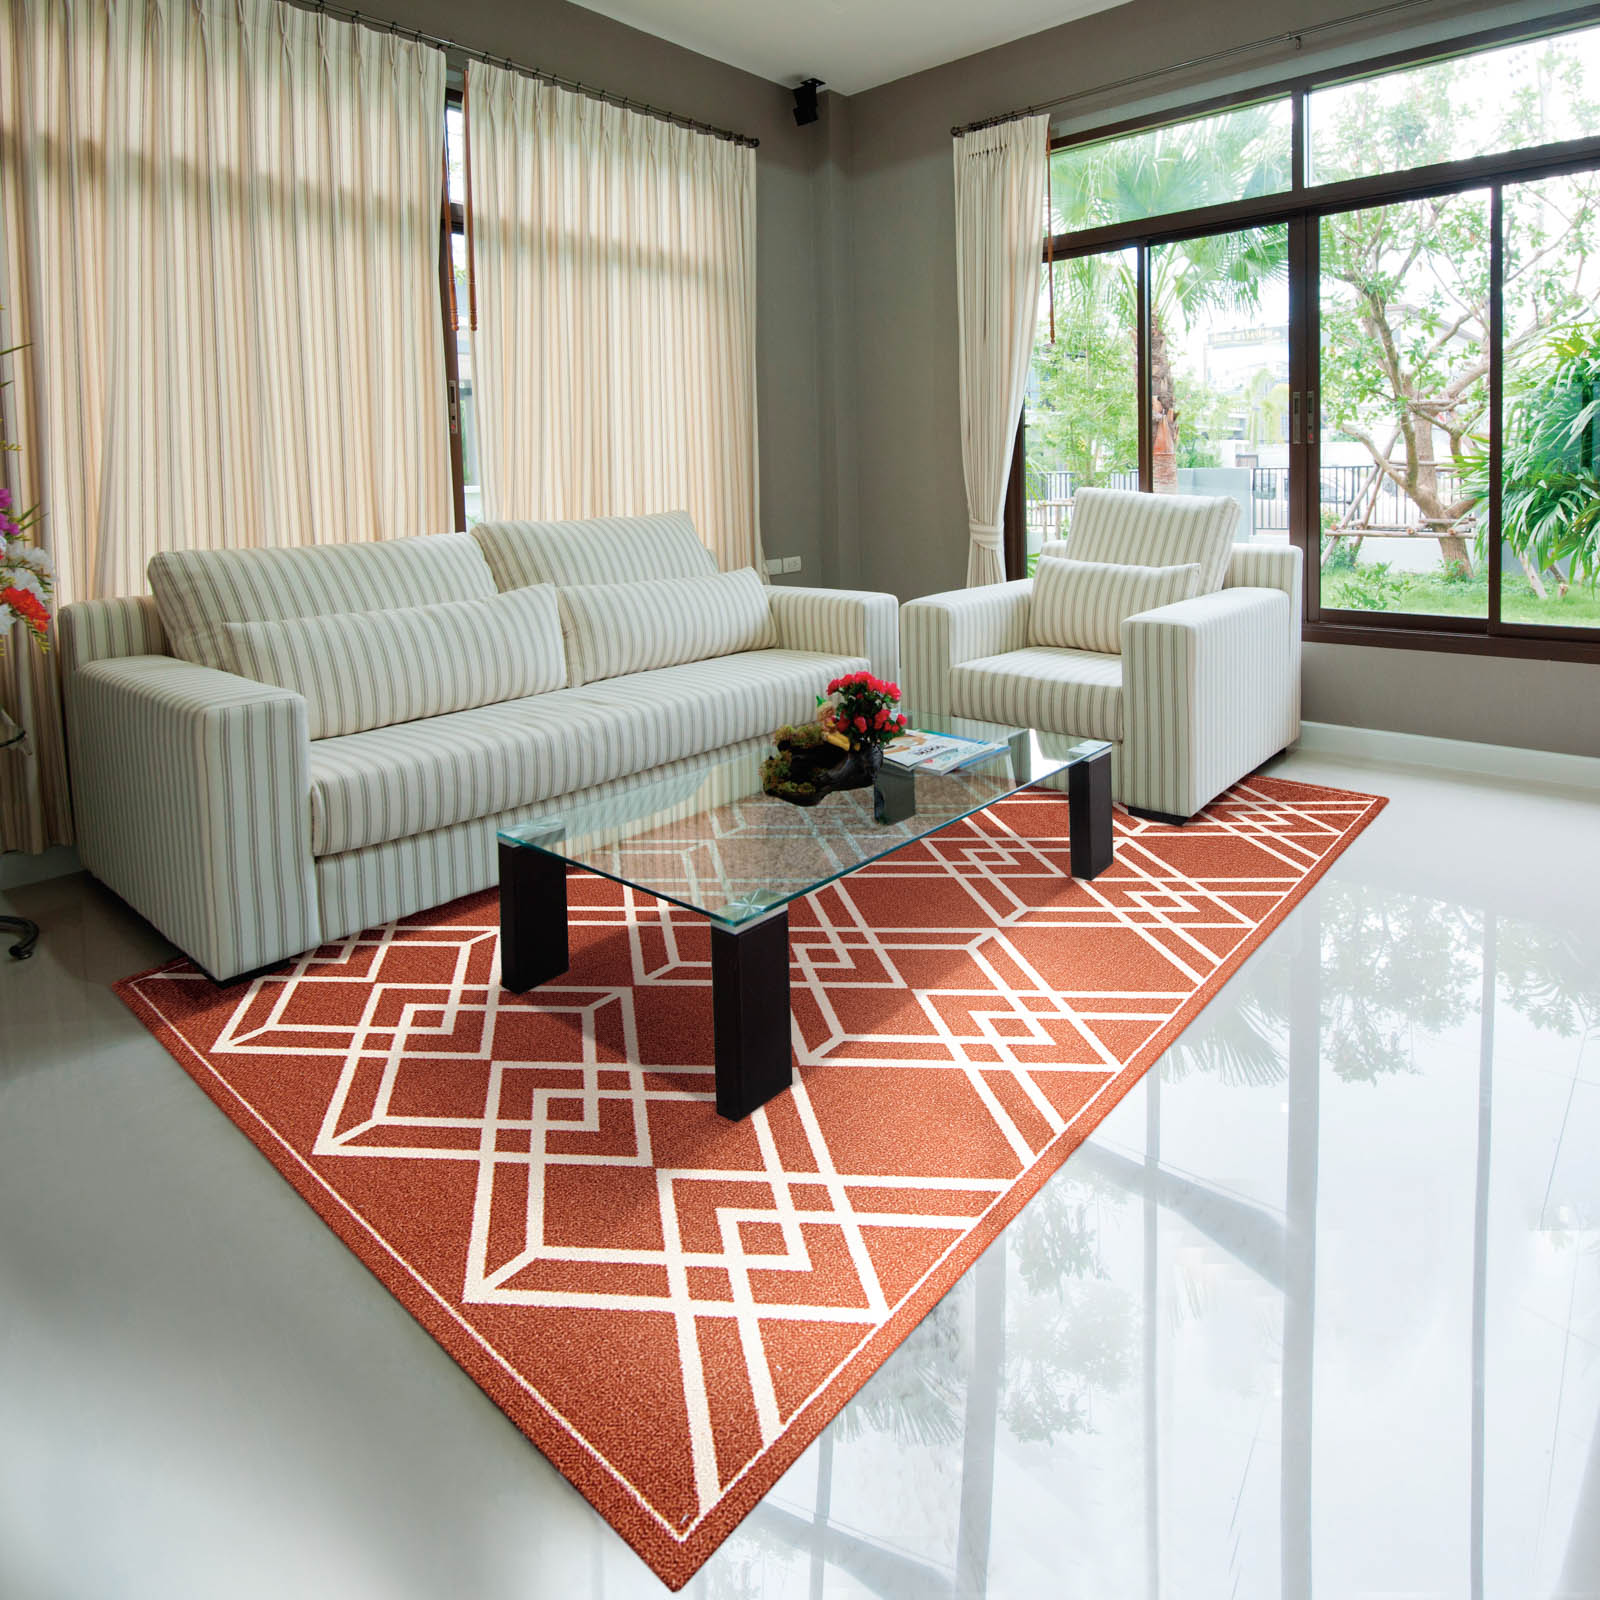 Enhance Rugs EN002 in Paprika